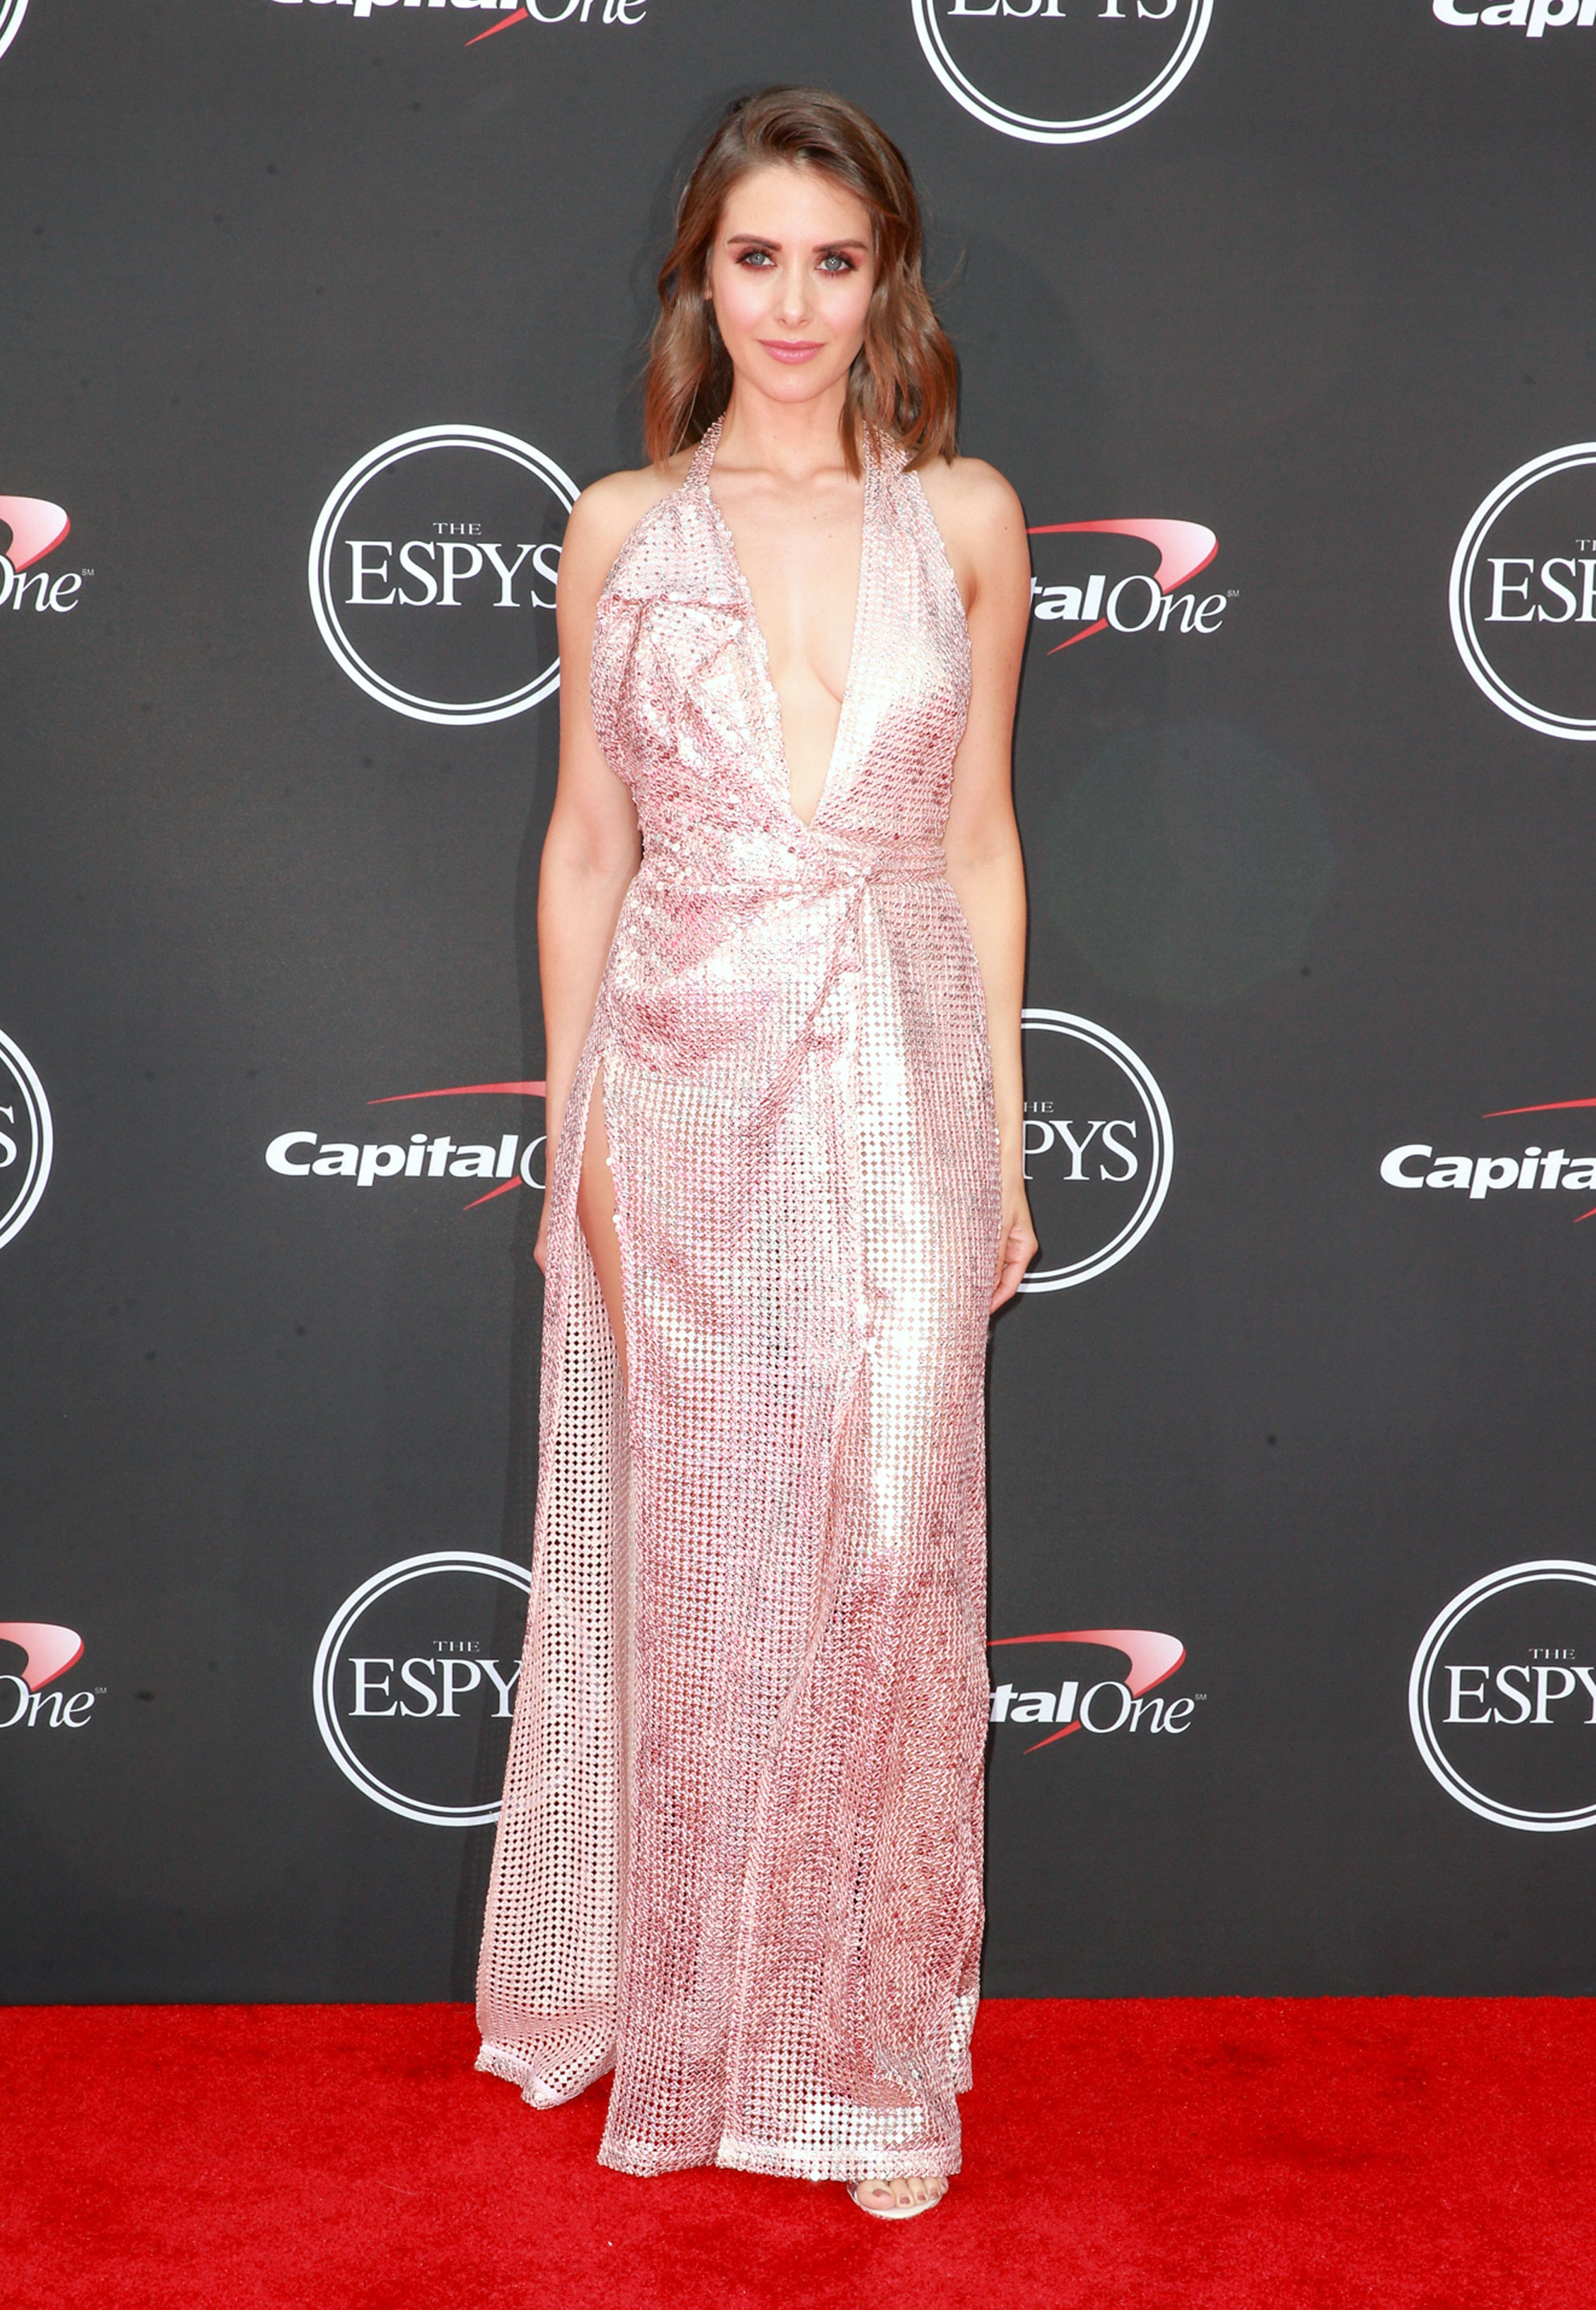 Alison Brie espys - Wearing a Vivienne Westwood Couture pink sequined dress with a plunging neckline and Sophia Webster gem sandals.